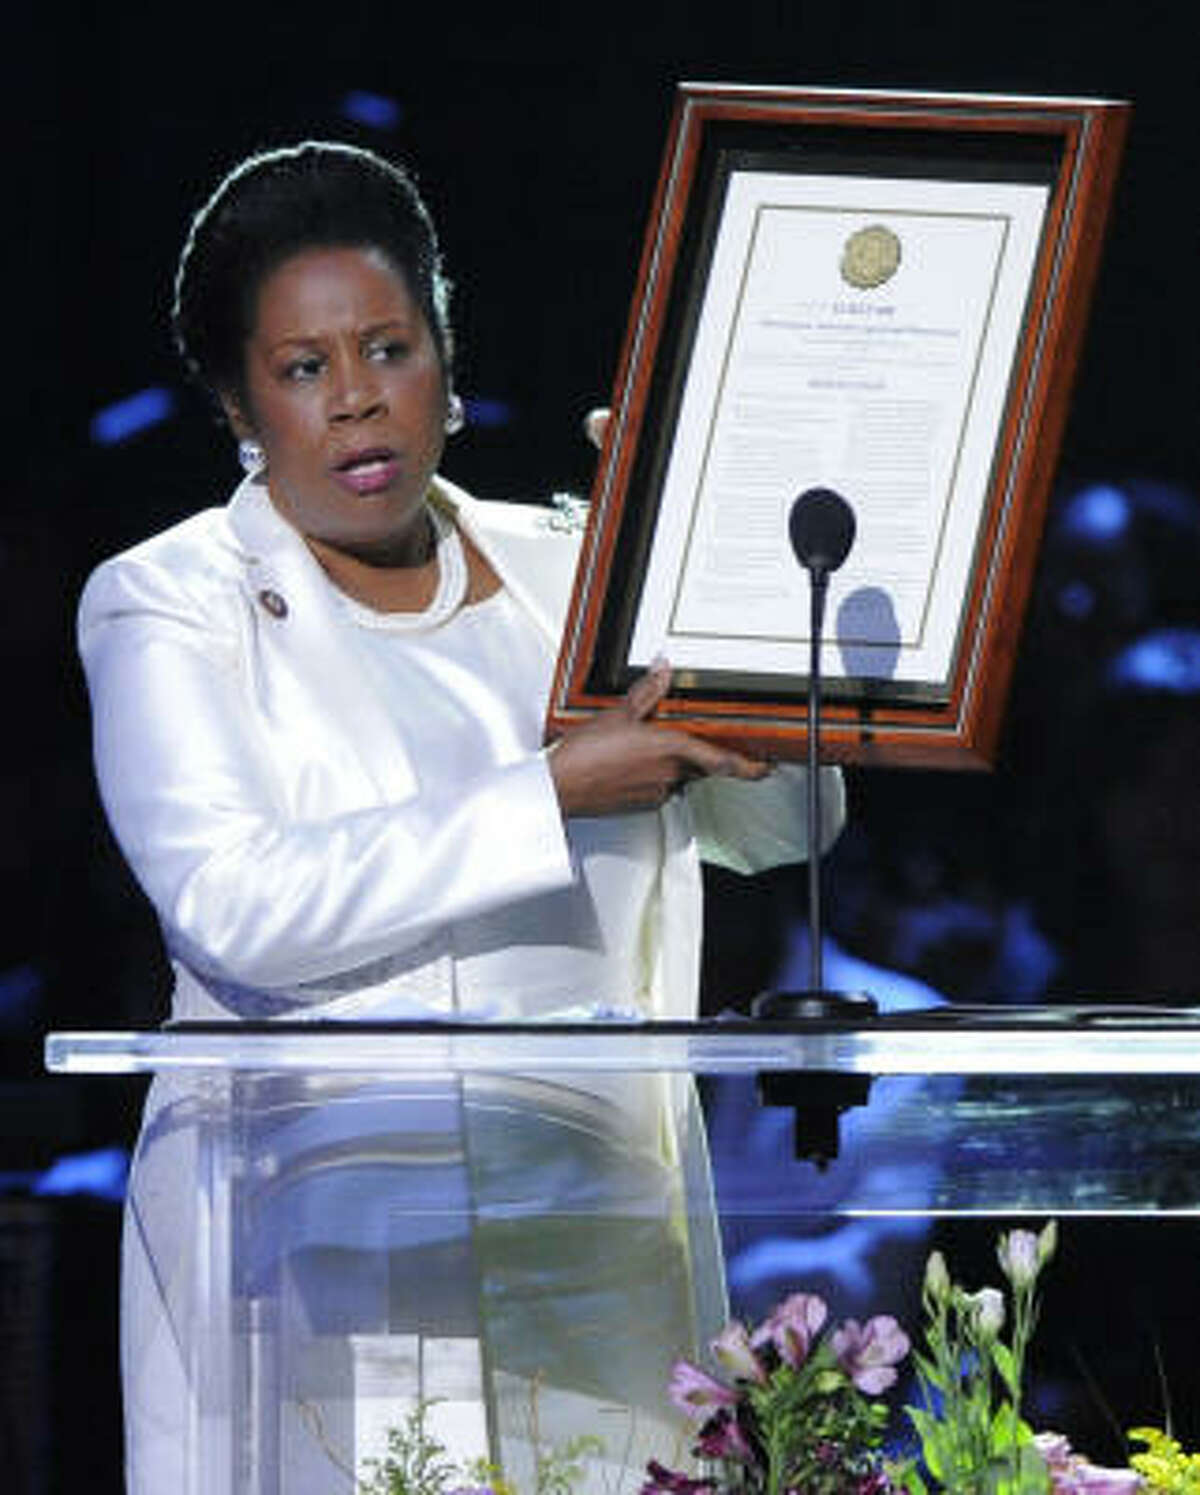 U.S. Rep. Sheila Jackson Lee, a Houston Democrat, unveiled her proposal for the tribute at Michael Jackson's memorial service on Tuesday.